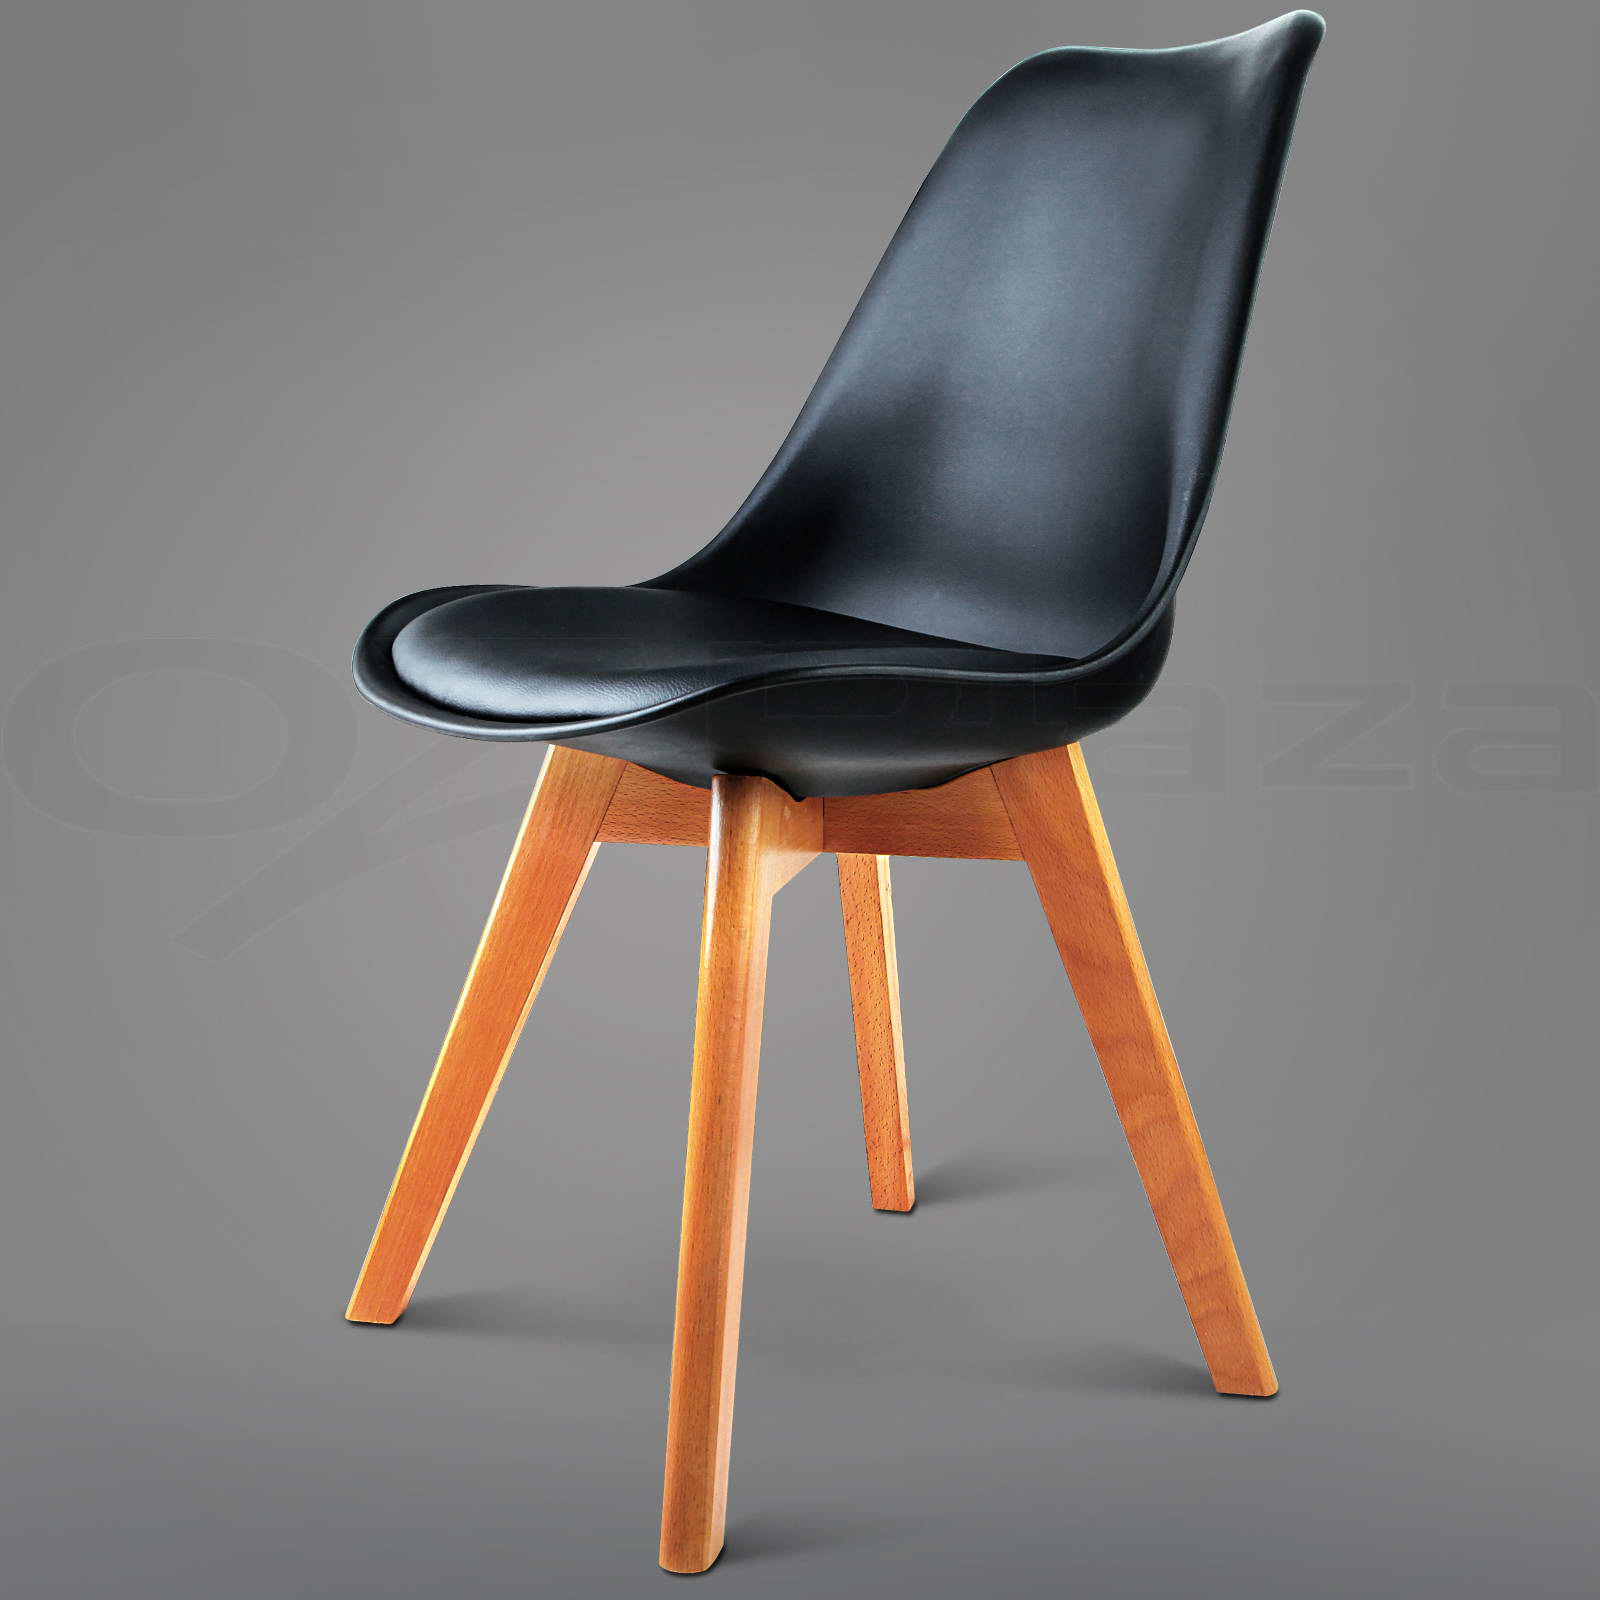 4 x padded retro replica eames eiffel dsw dining chairs cafe kitchen black - Eames eiffel chair reproduction ...